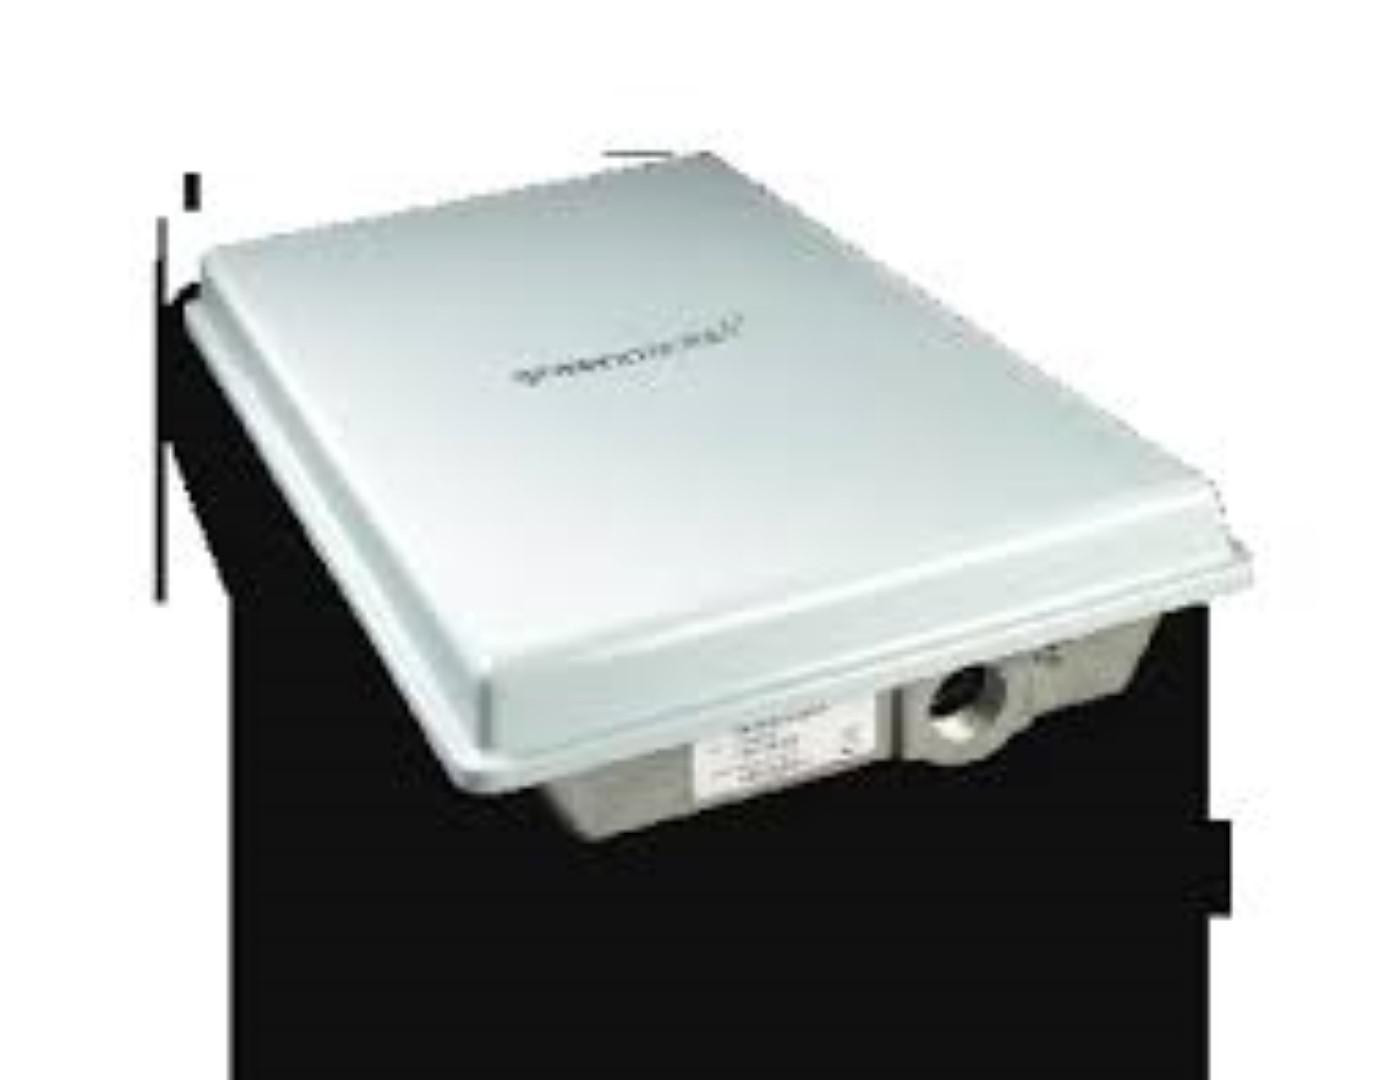 WIMAX OX-350 GREEN PACHET OUTDOOR CPE,  IEEE 802.16e WiMAX Wave 2. WiMAX Forum compliant, 14 dBi Gain,  MIMO Matrix A & B, Security - AES, WPA/WPA2, Power-Over-Ethernet - 802.3af. - imaginea 1